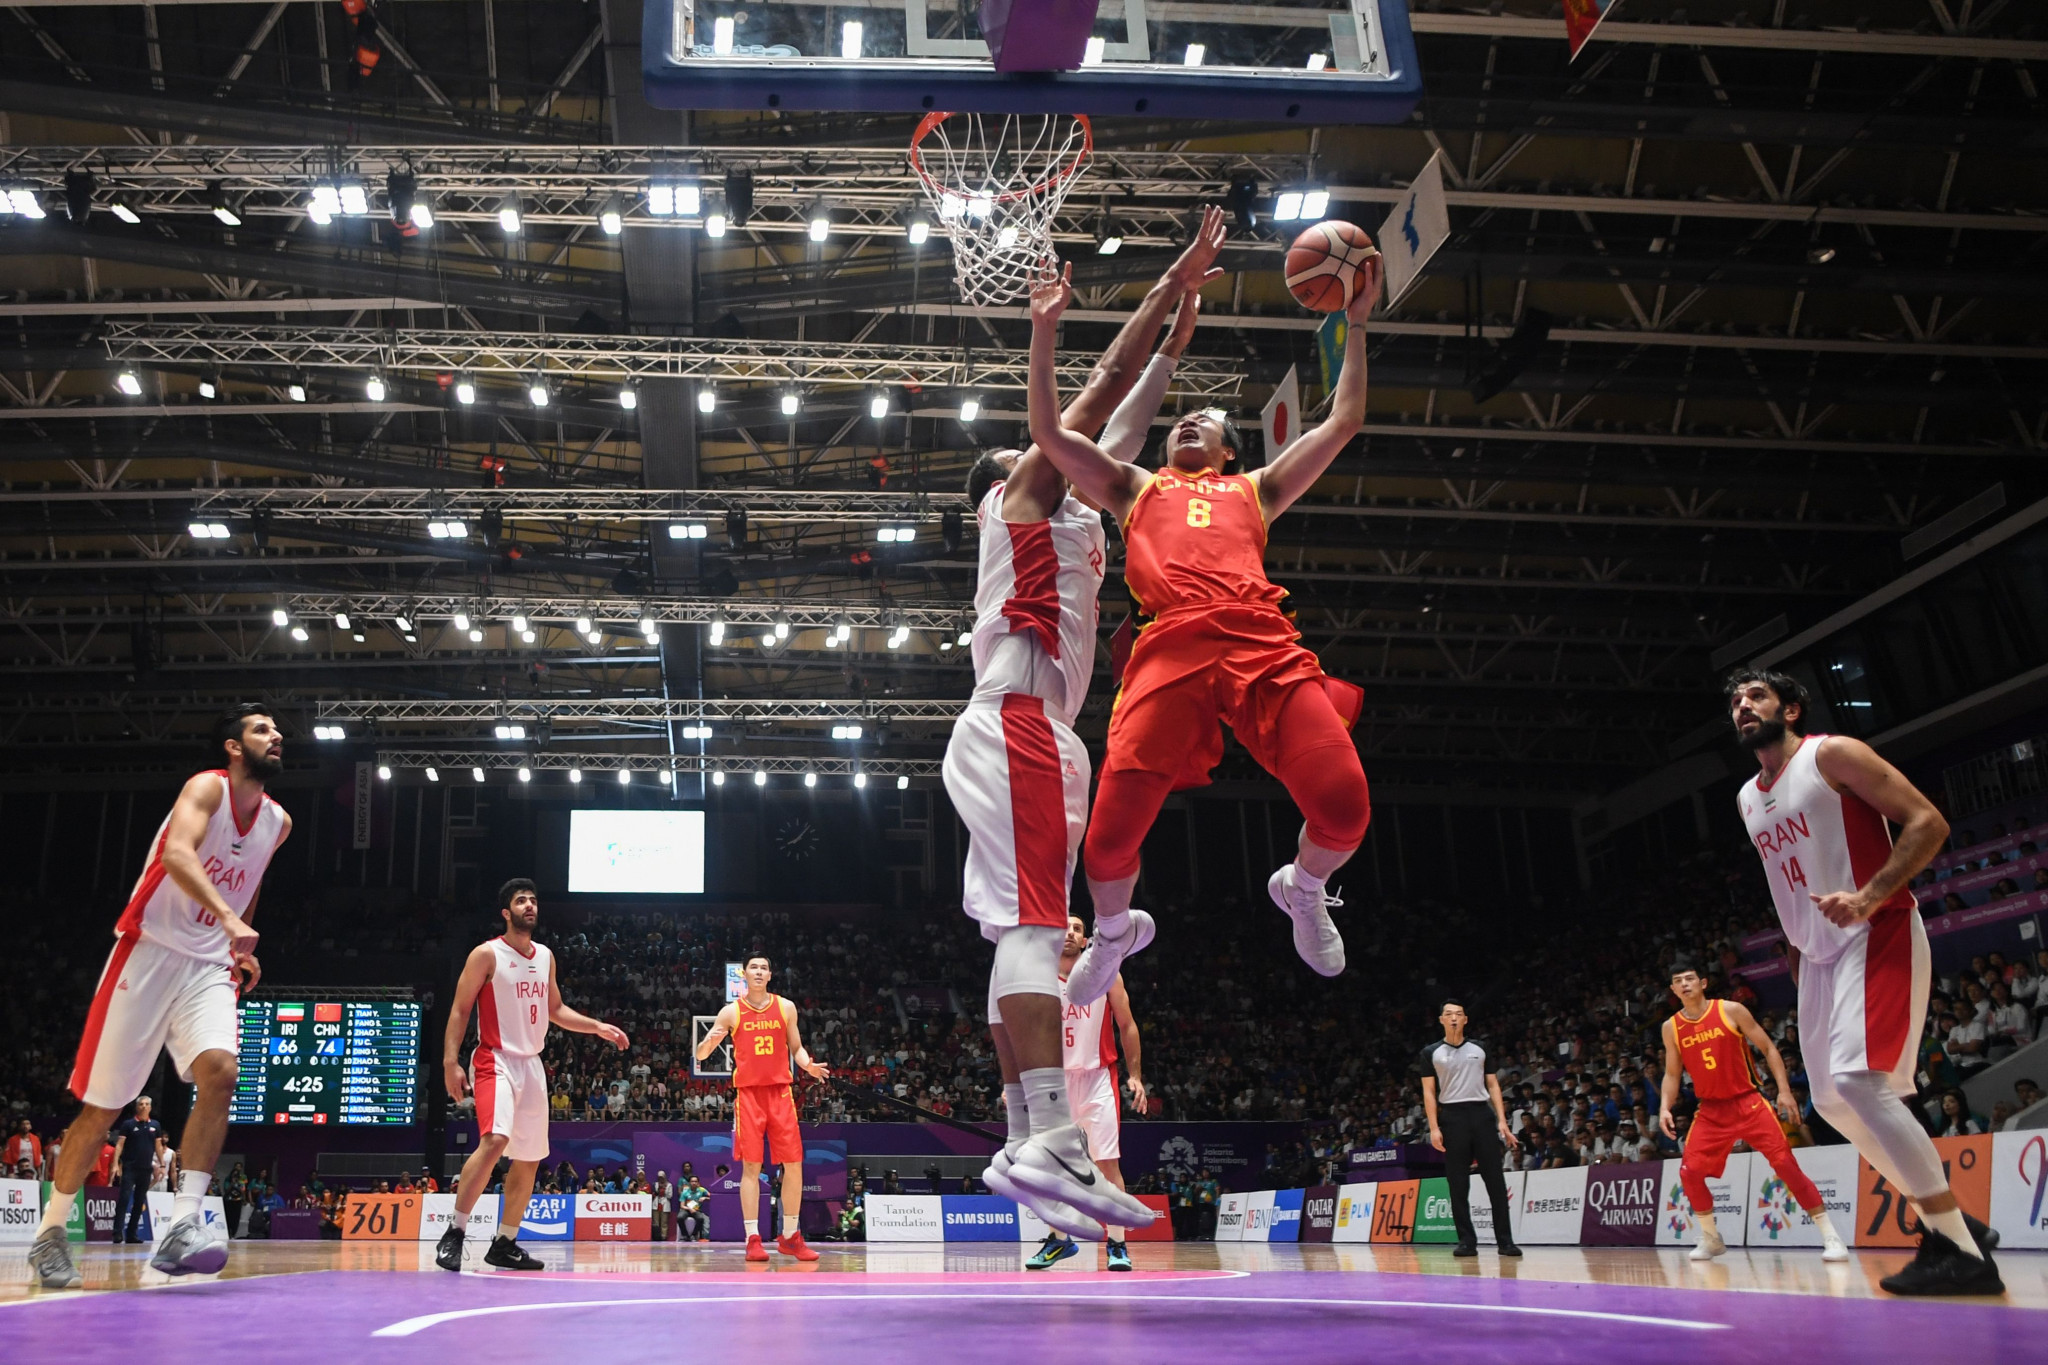 China beat Iran to secure a record-extending eighth men's basketball gold medal at the Asian Games ©Getty Images